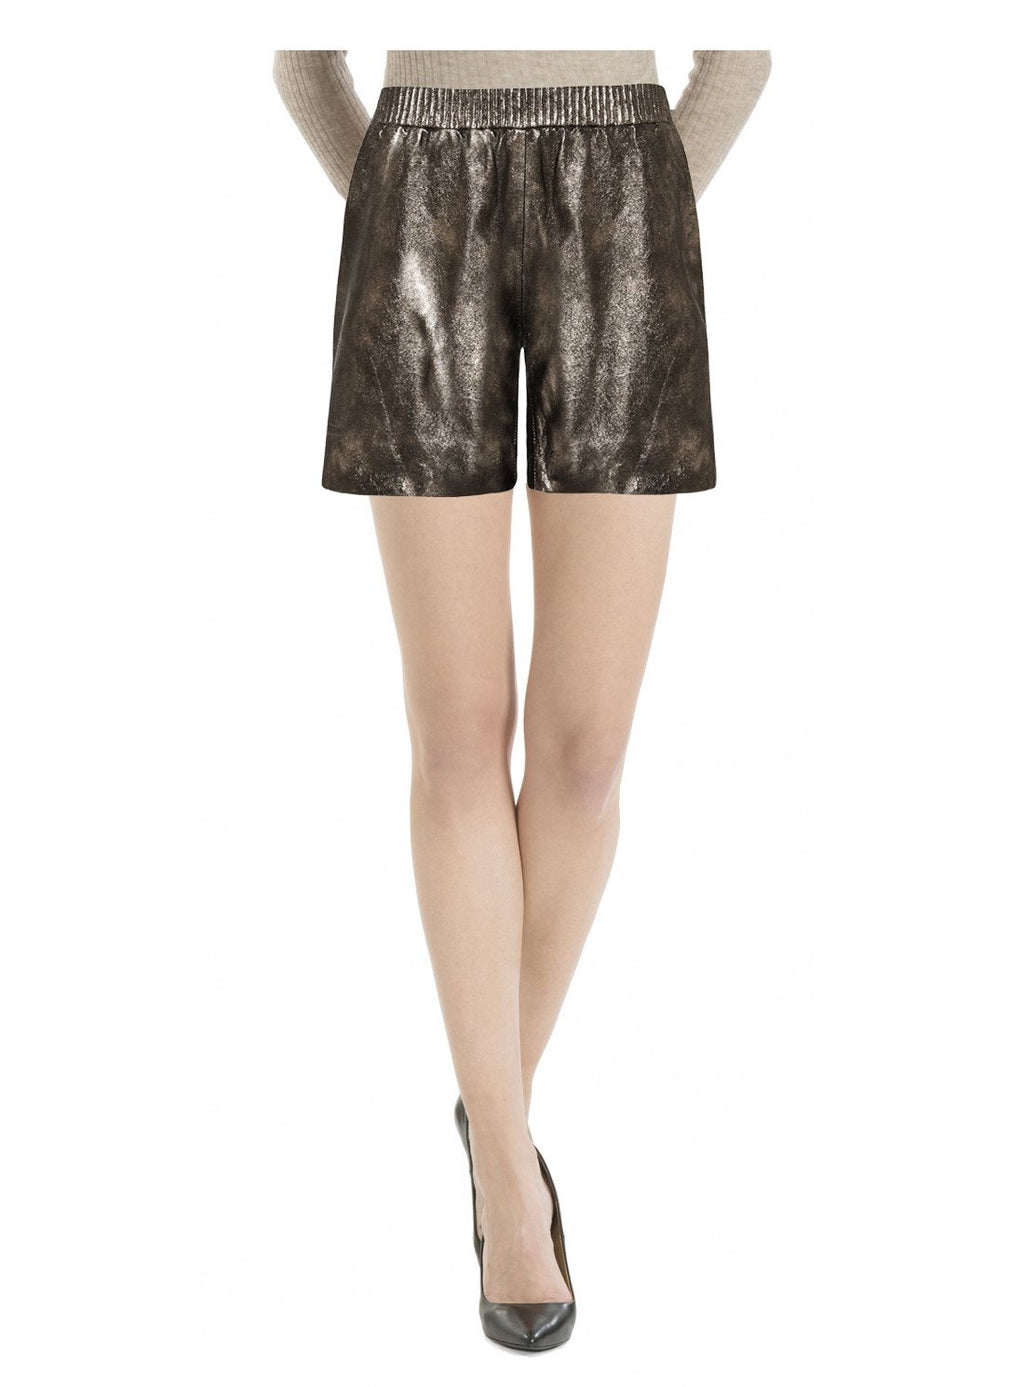 Women Elasticated Leather Shorts S / Leather / Grey, Ladies Leather Shorts - CrabRocks, LeatherfashionOnline  - 1